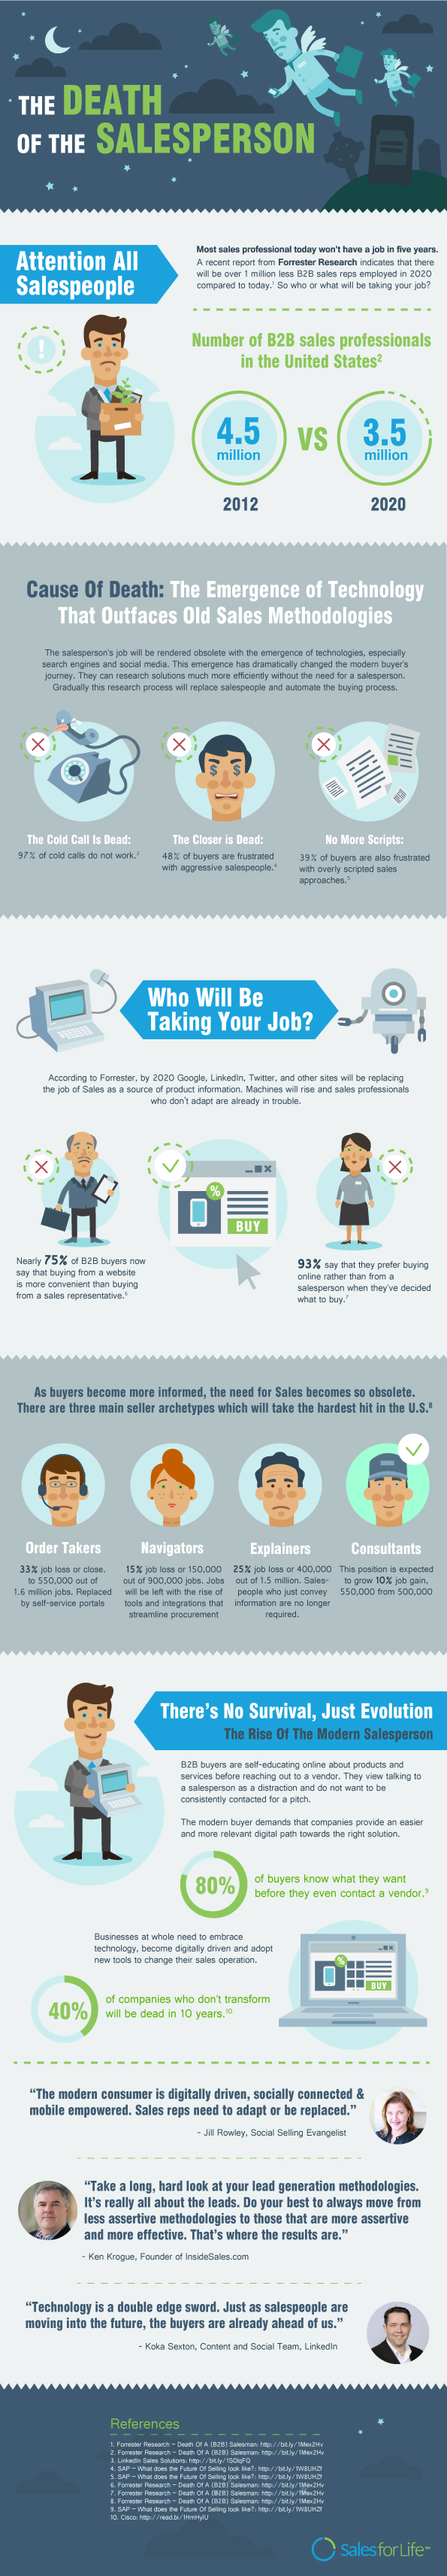 the-death-of-the-salesperson-social-selling-infographic